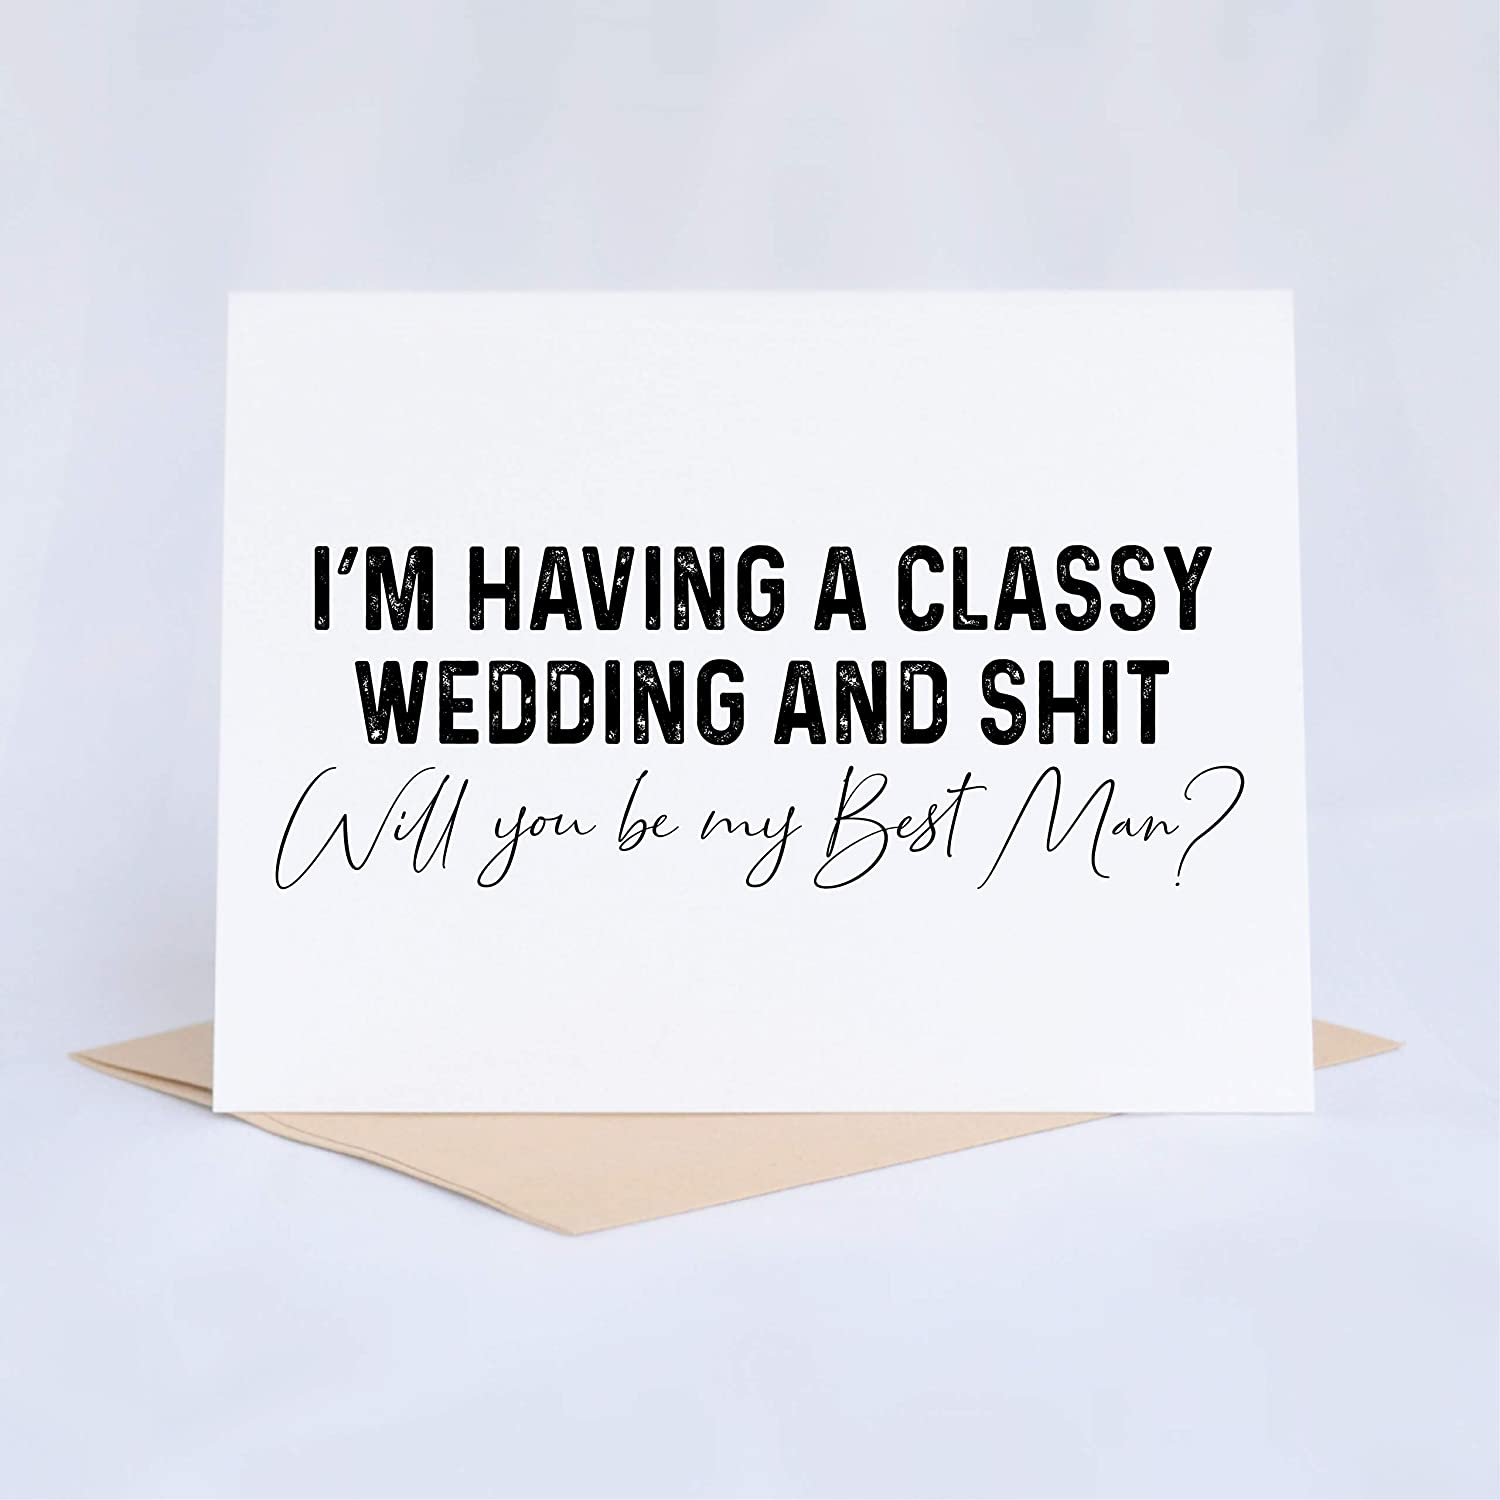 Funny Will You Be My Best Man Card Will You Be my Best Man? Im Having A Classy Wedding And Shit